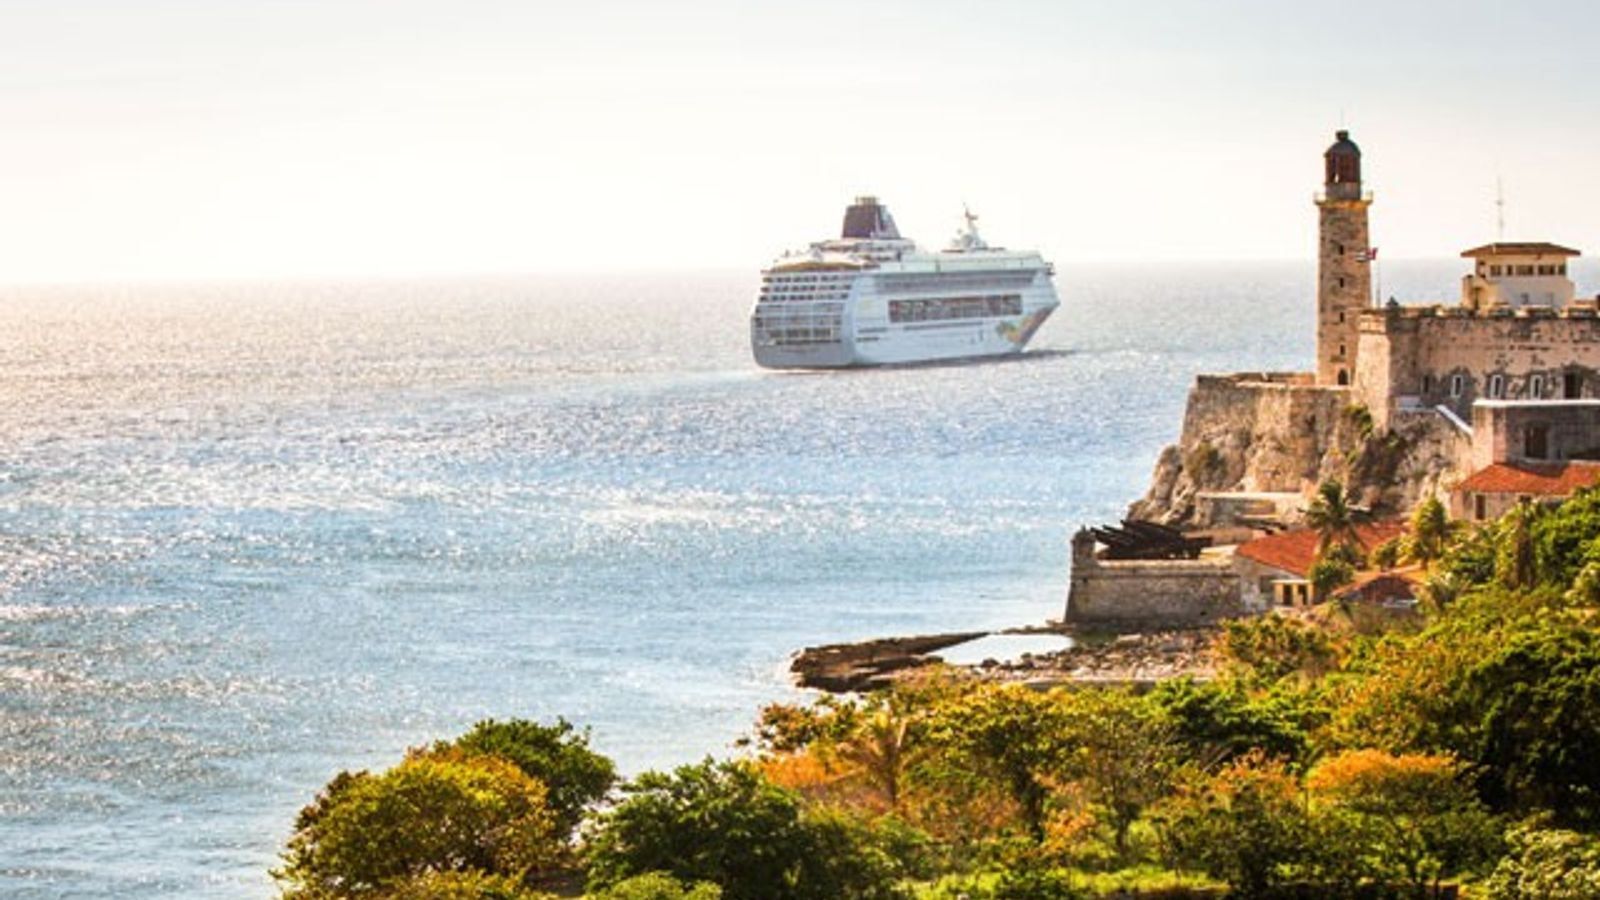 Beyond the Caribbean with Norwegian Cruise Line